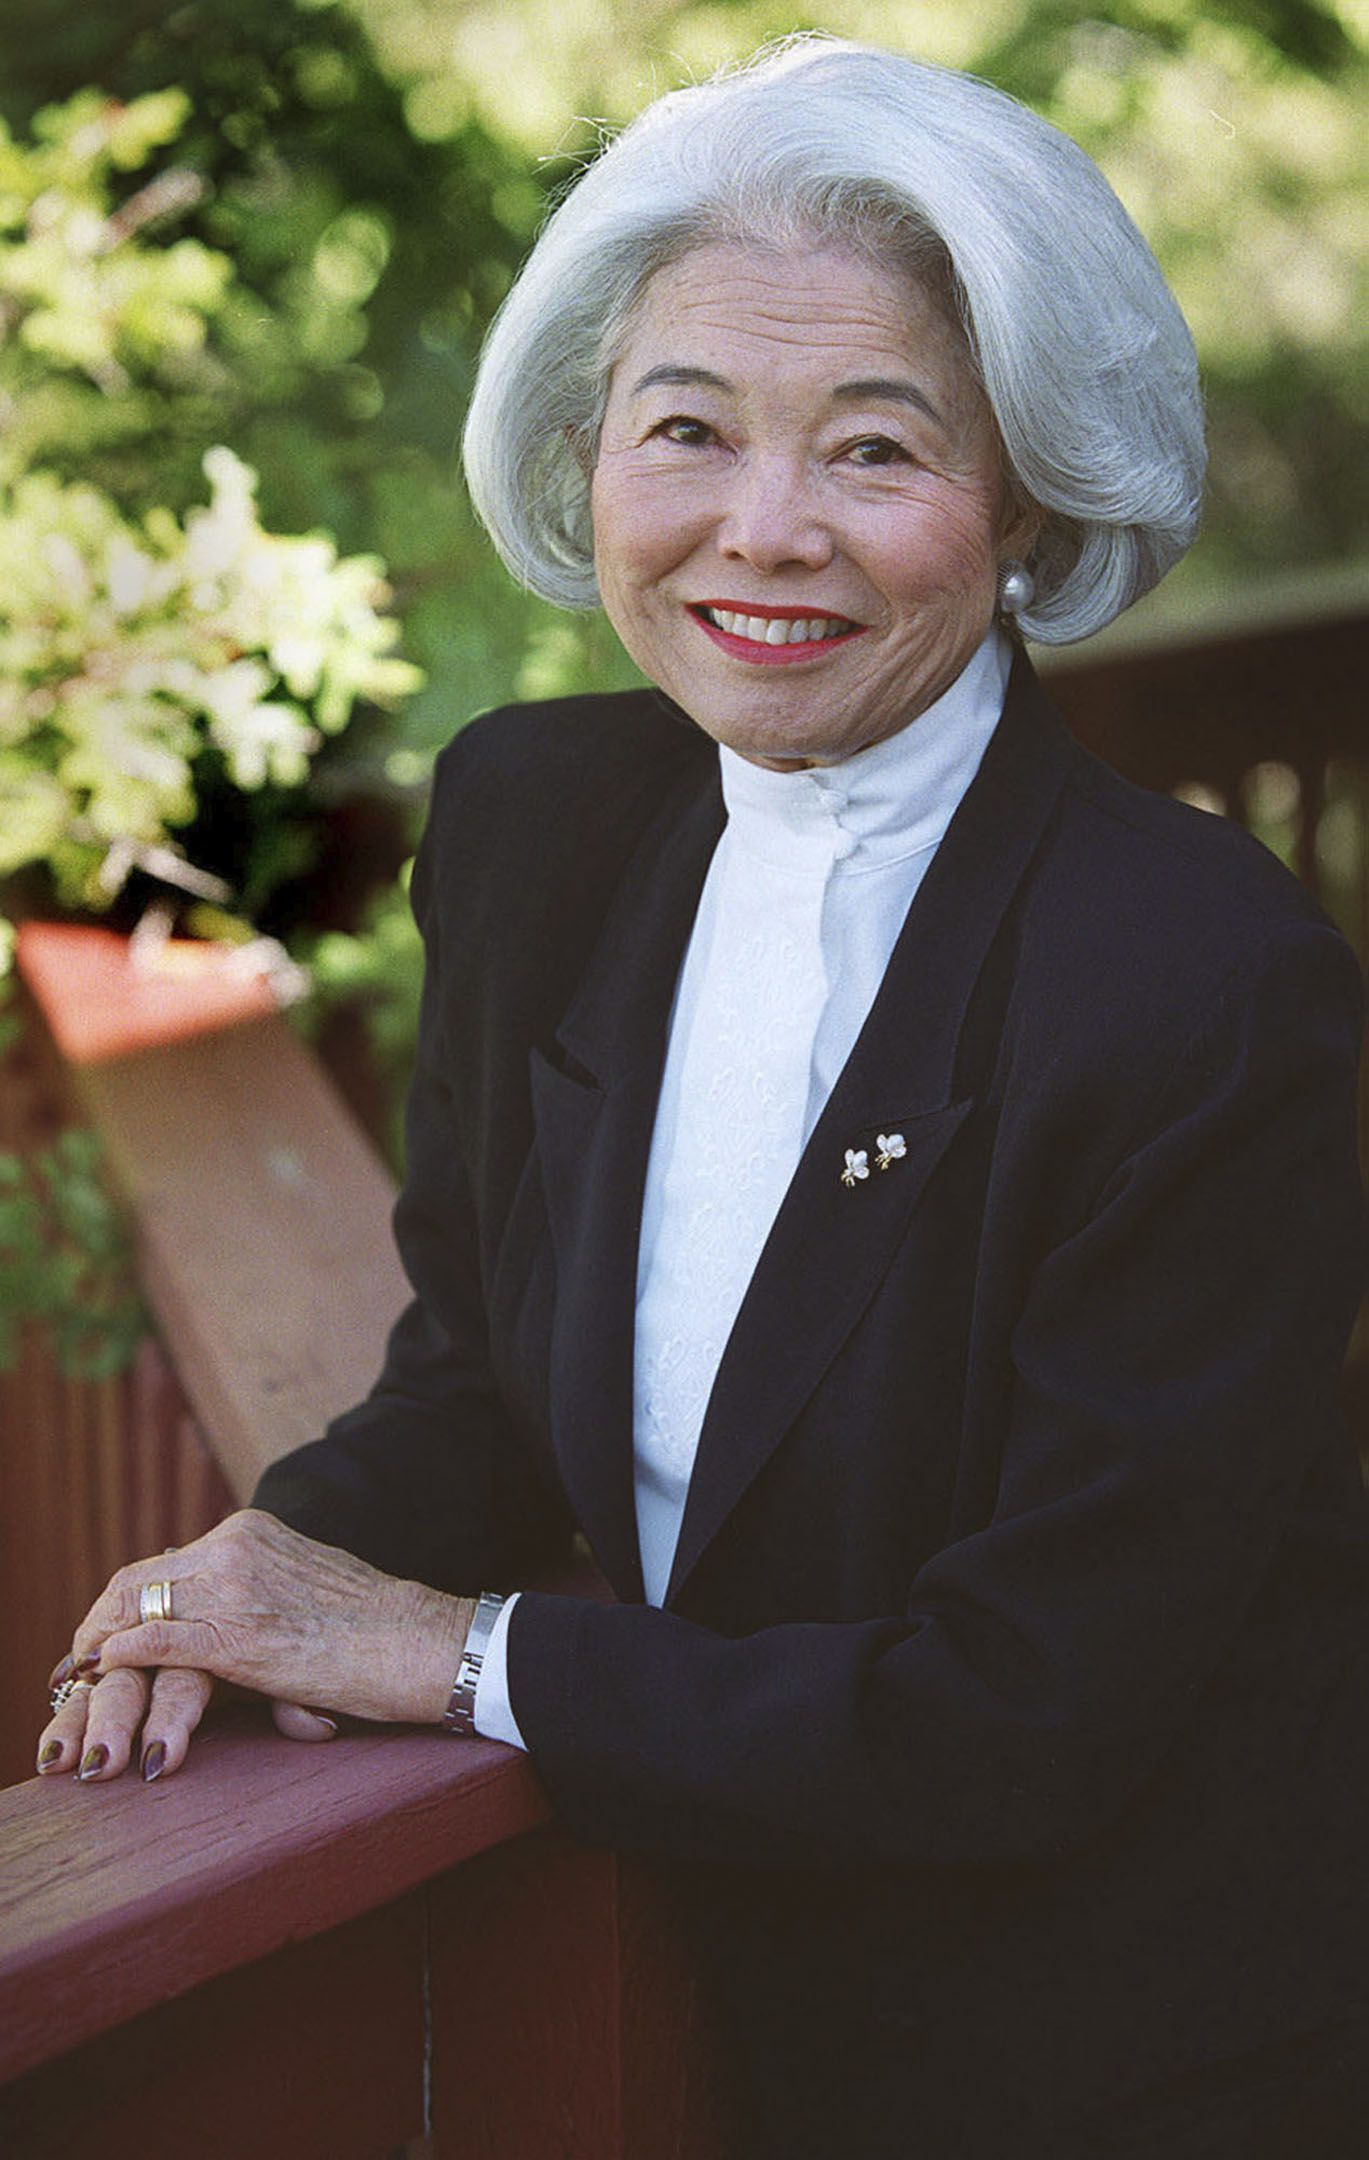 (Tribune file photo) Chieko Okazaki served as first counselor in general Relief Society presidency of The Church of Jesus Christ of Latter-day Saints from 1990 to 1997.